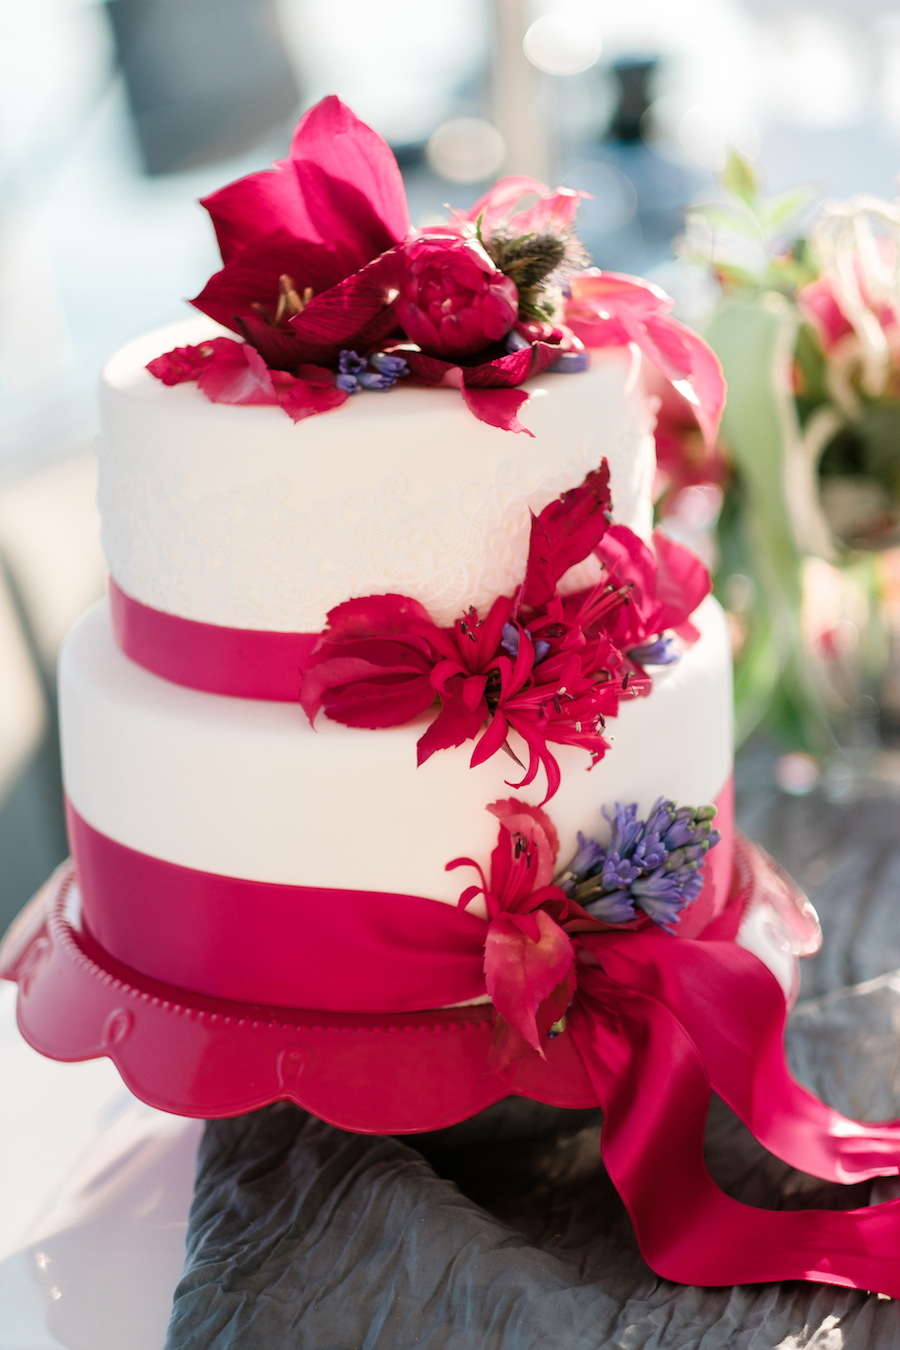 wedding cake bianca e rossa